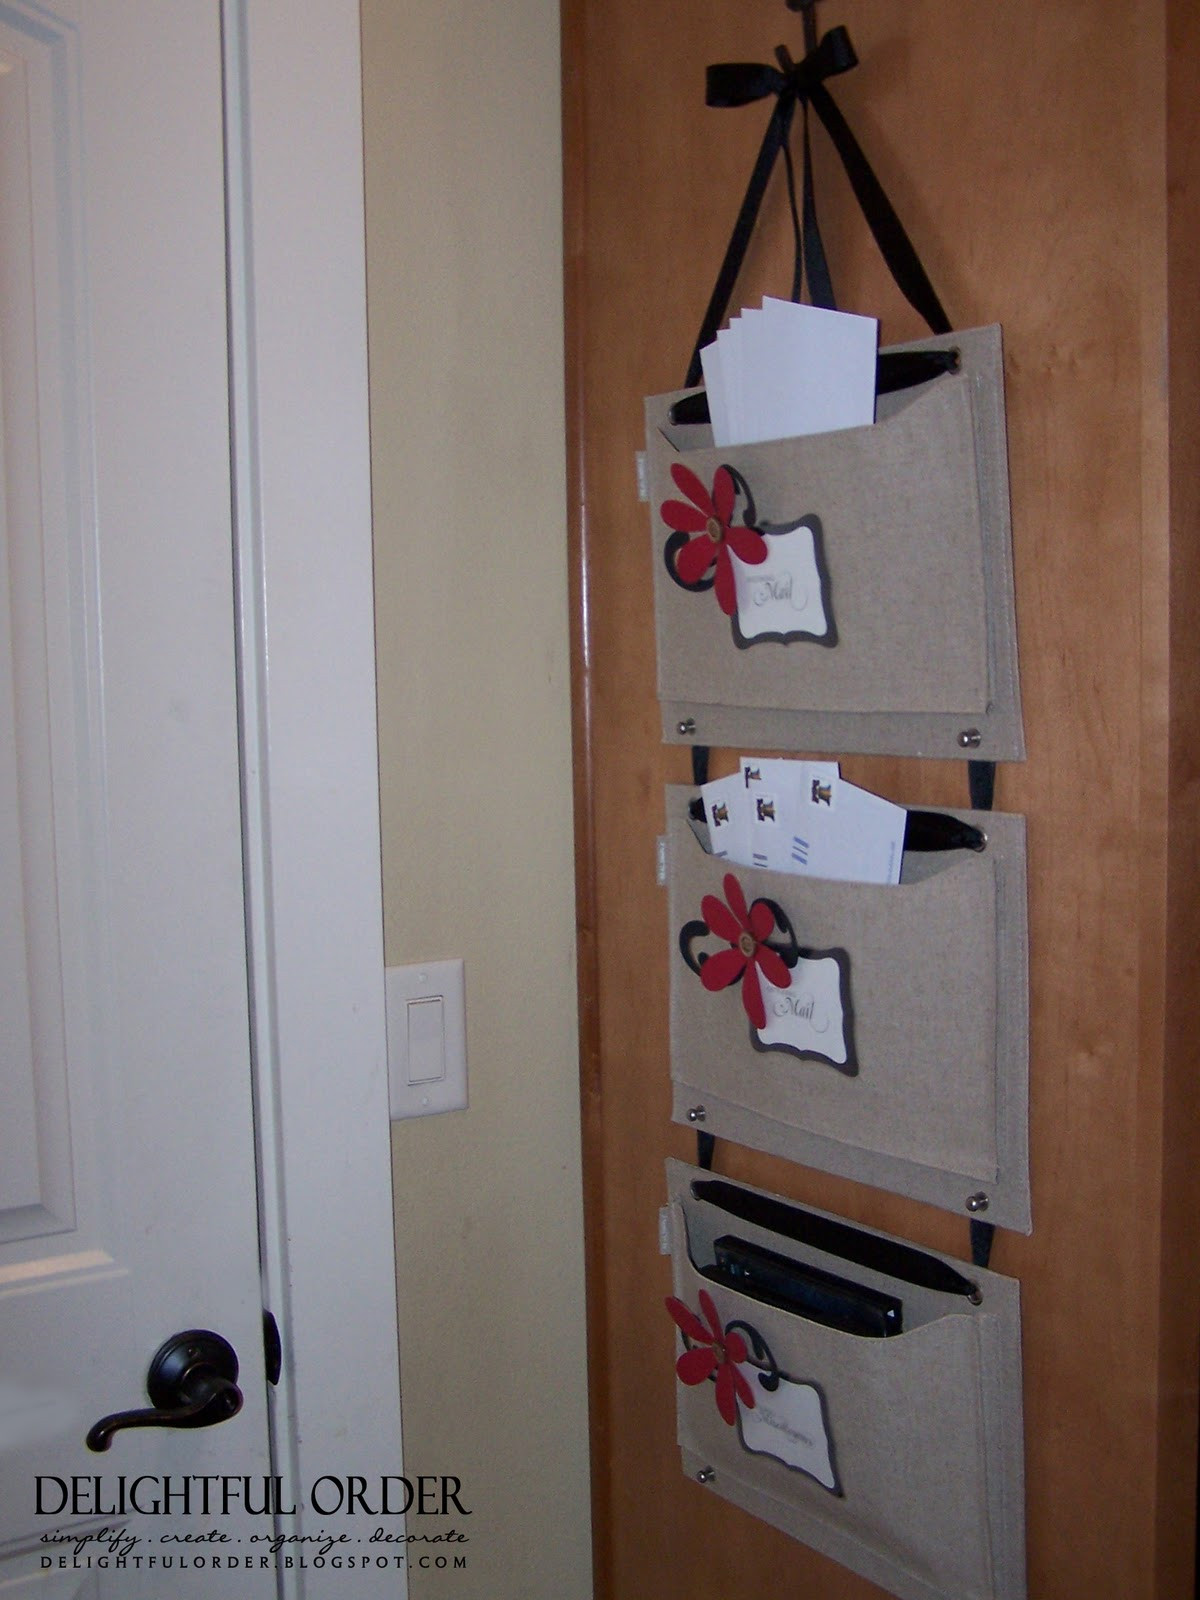 Best ideas about DIY Mail Organizer Cardboard . Save or Pin Delightful Order Mail Organizer Now.